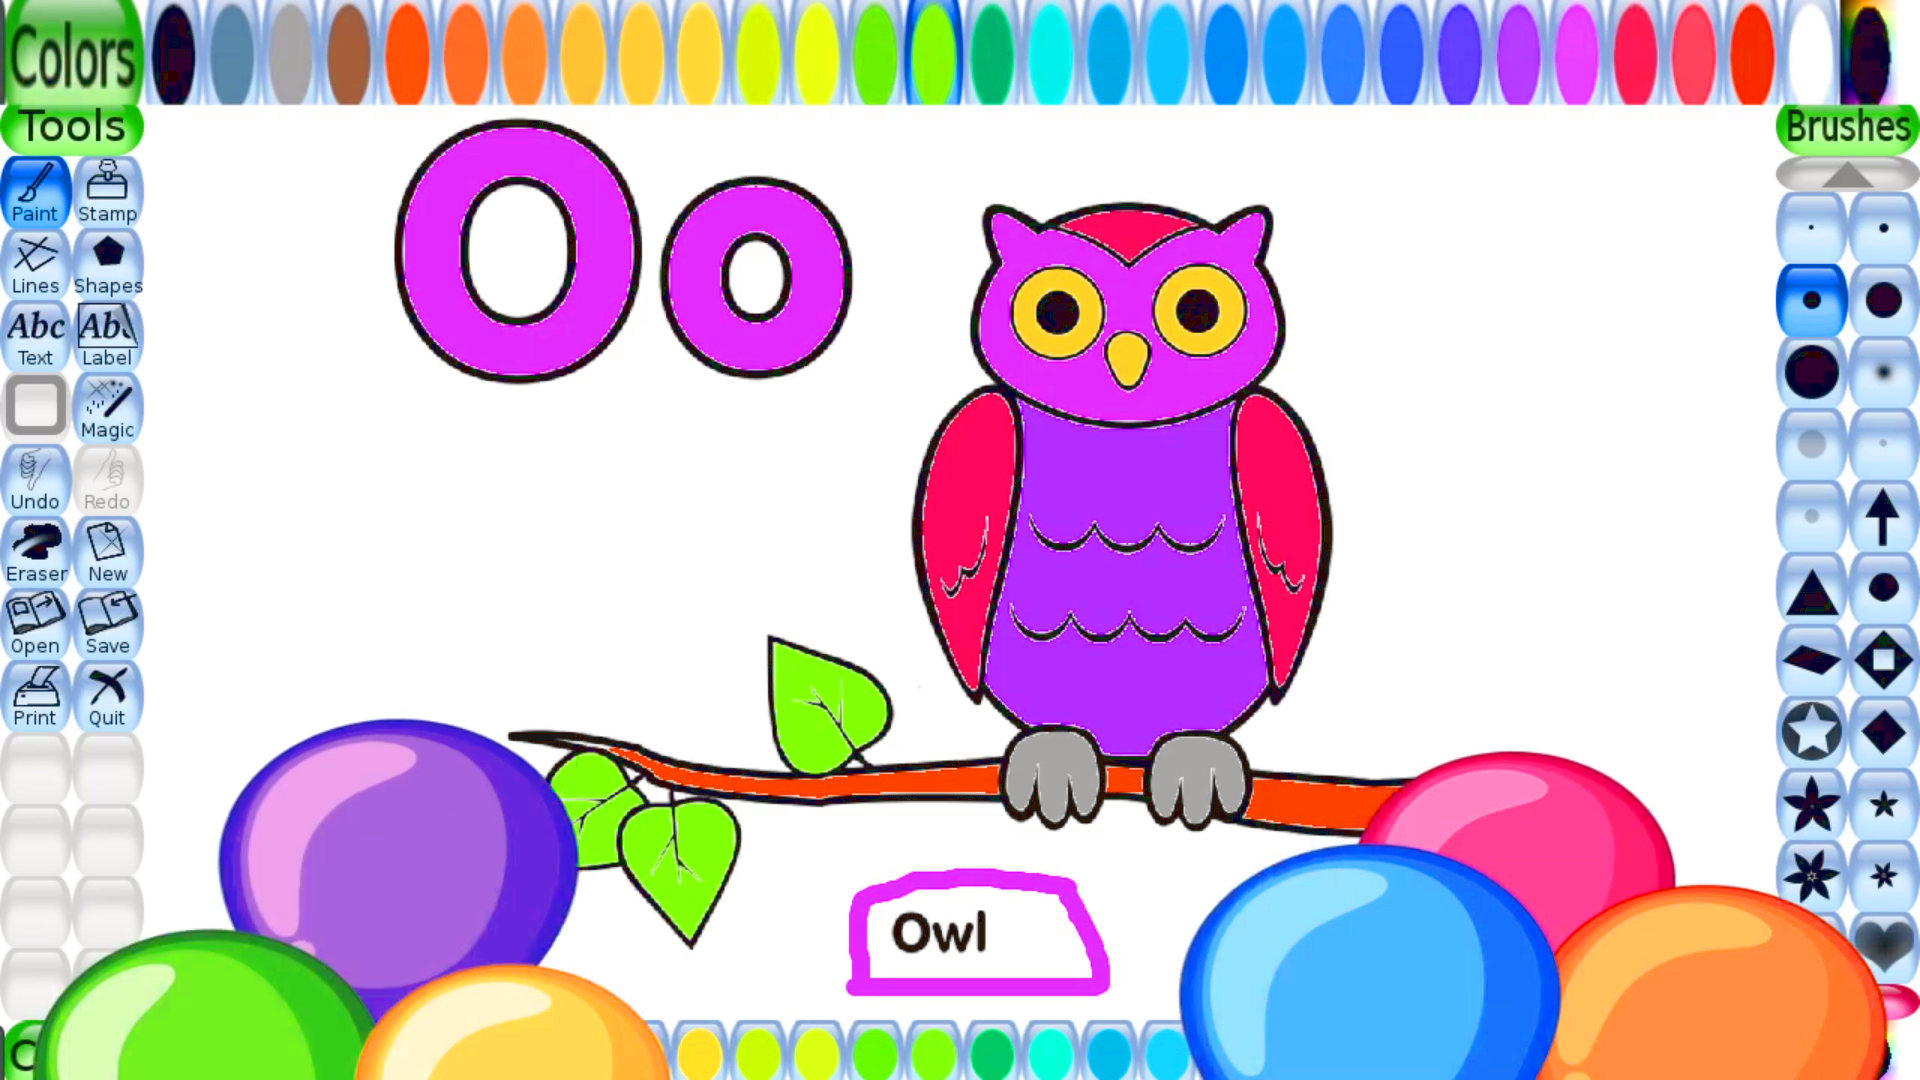 Free Printable Owl Coloring Page For Kids To Print And